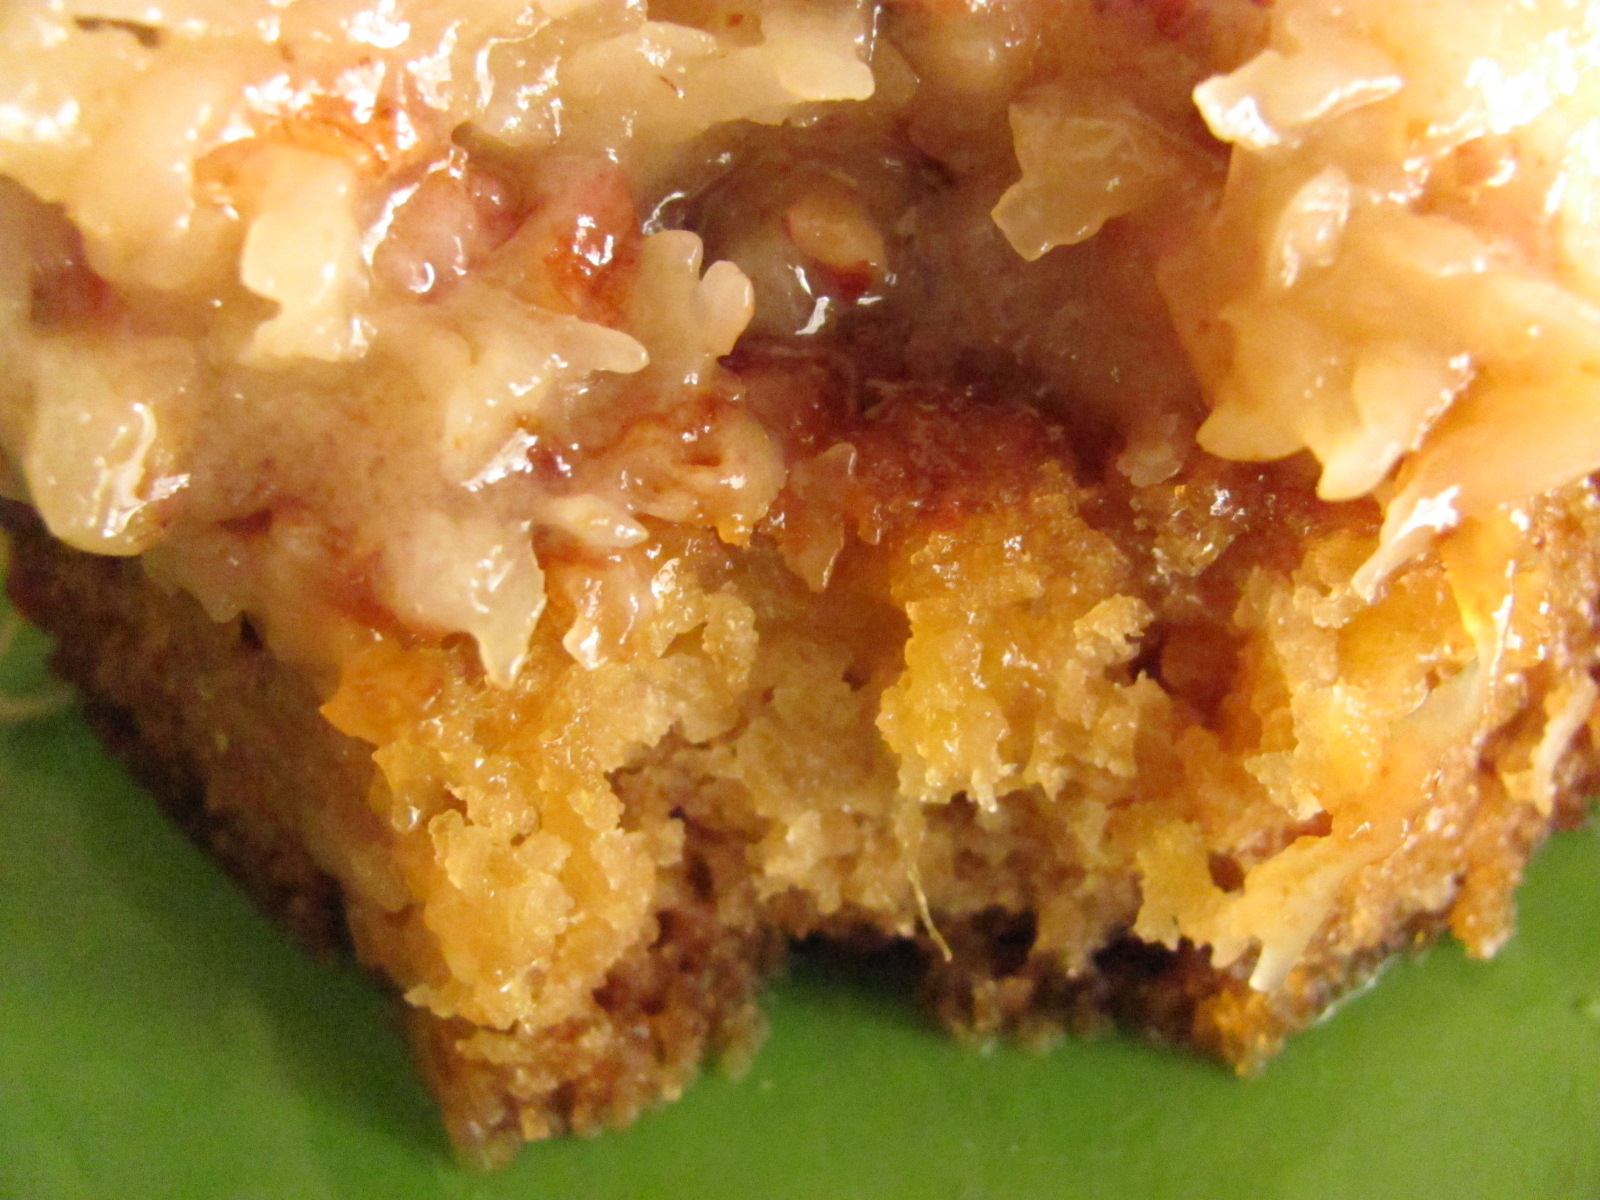 Food funs recipes easy cajun dessert recipes easy cajun dessert recipes forumfinder Image collections